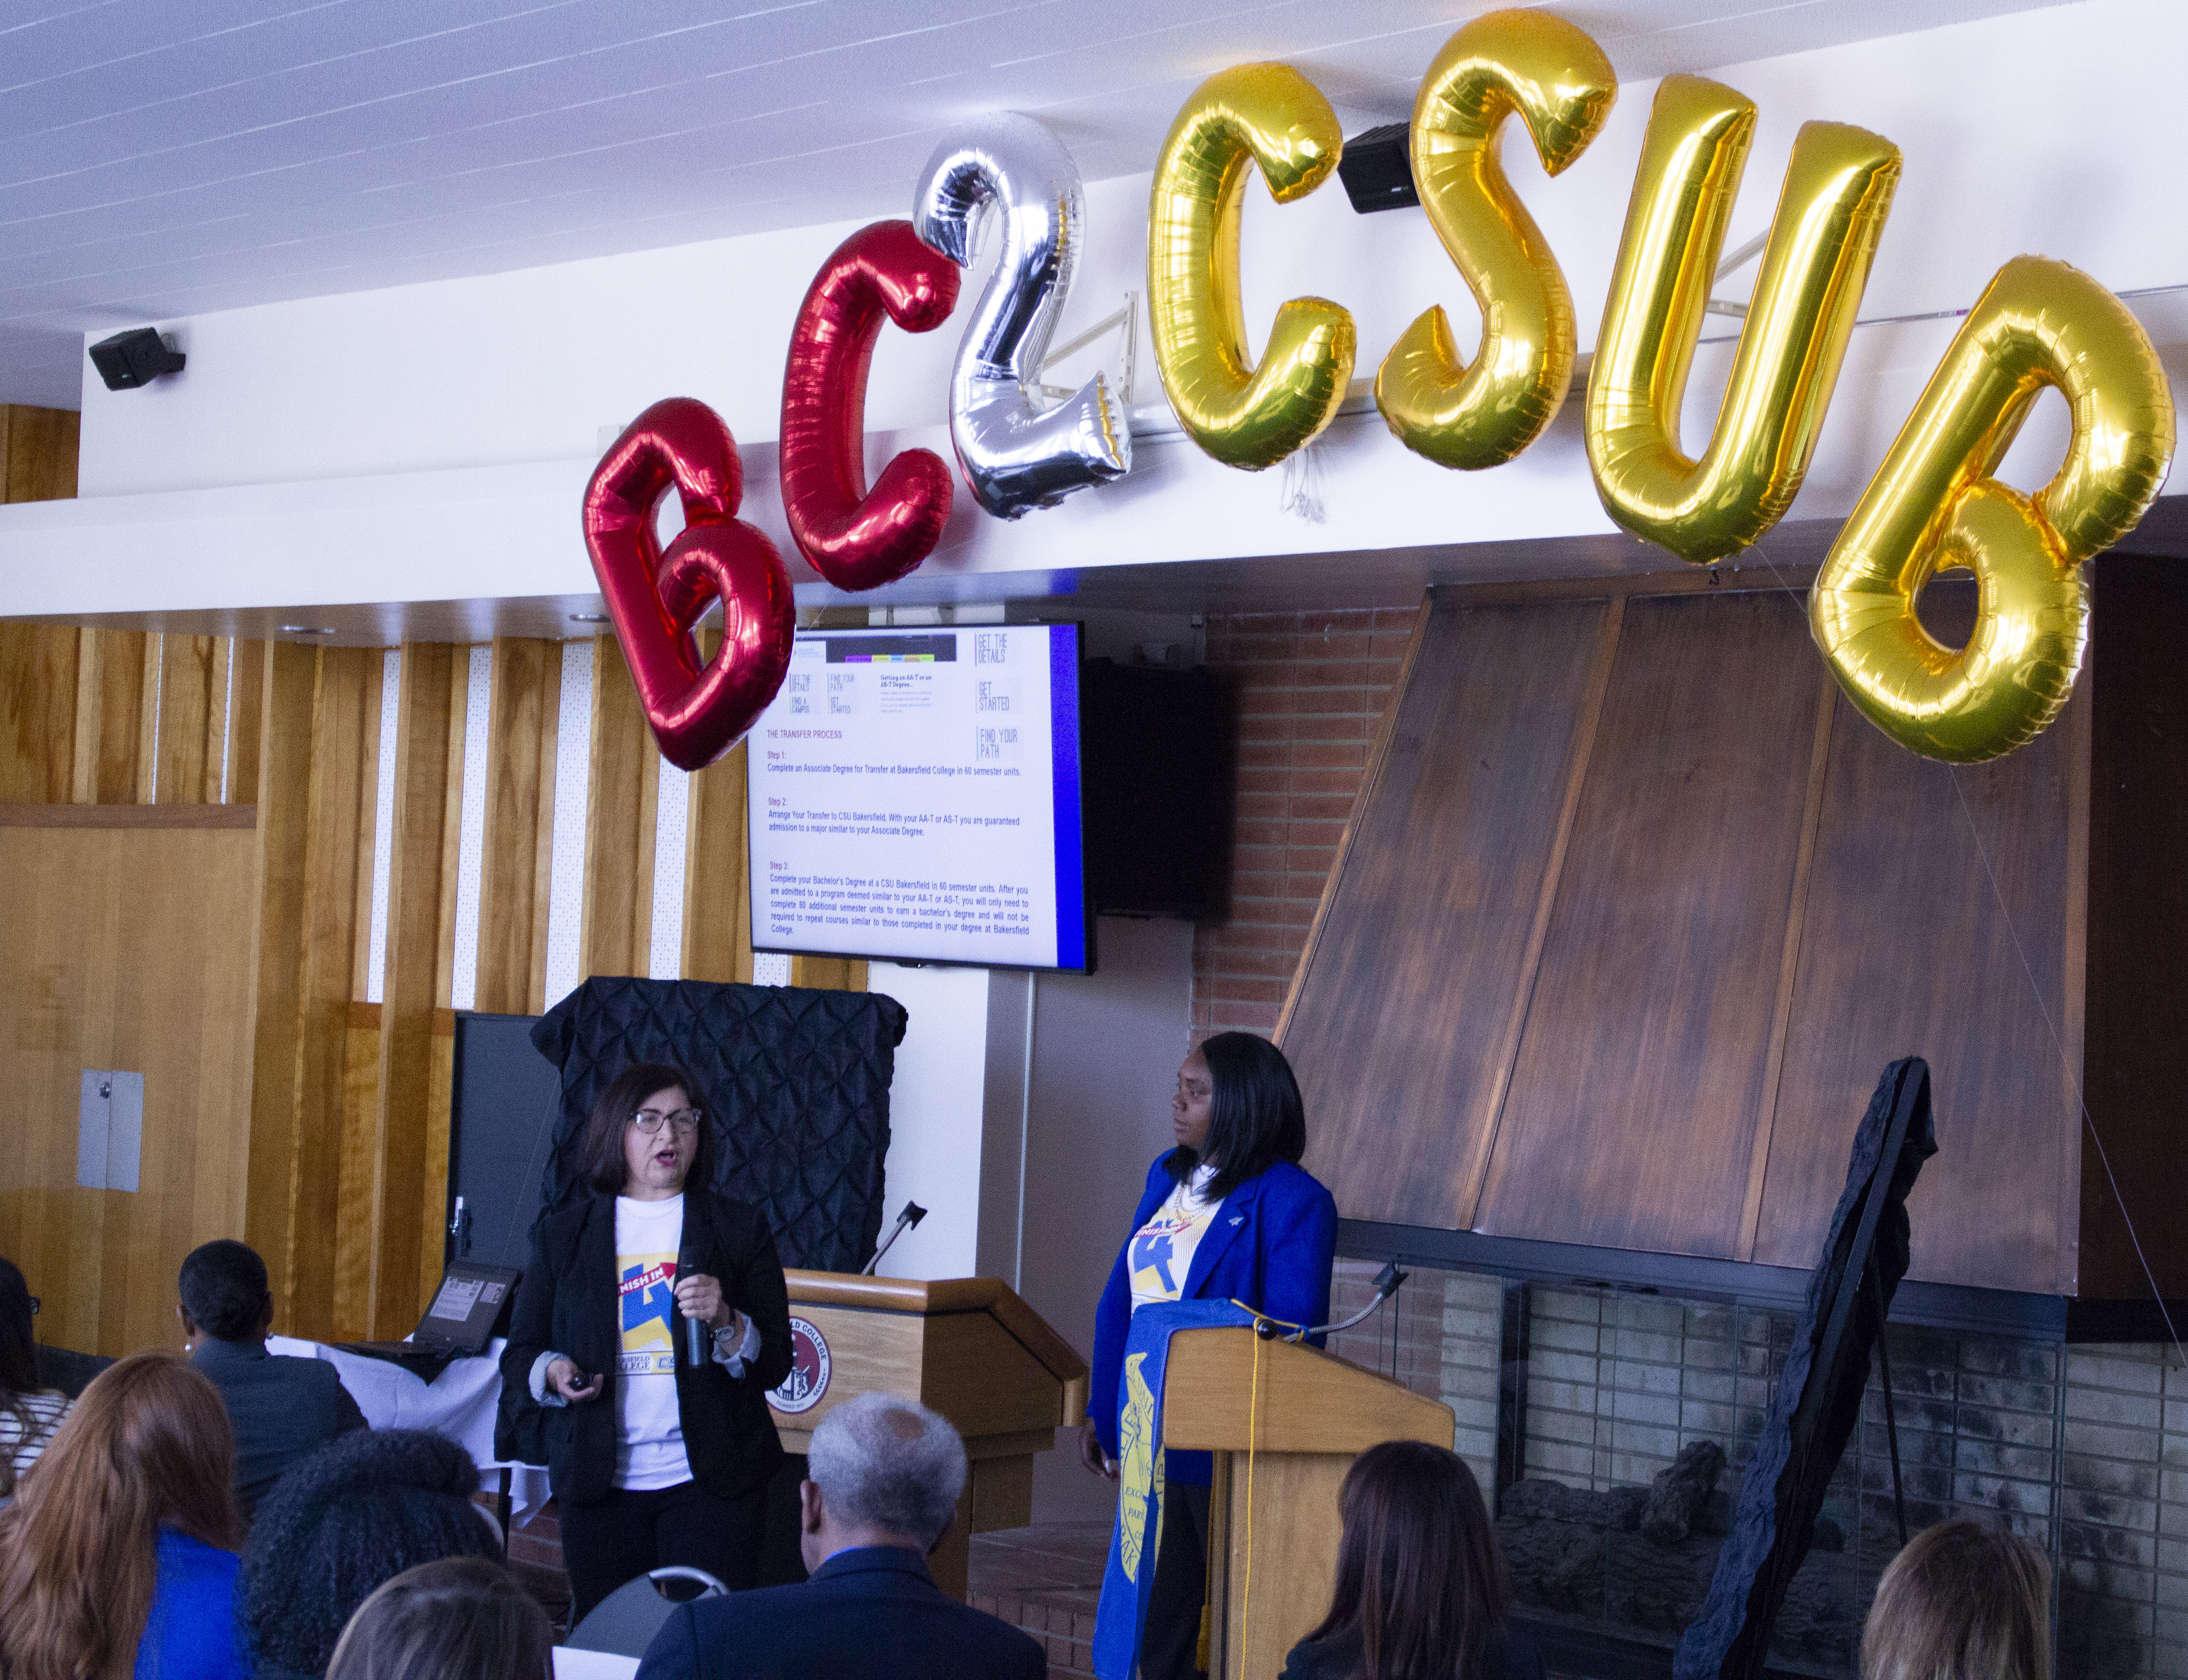 BC 2 CSUB balloons over speakers from BC and CSUB